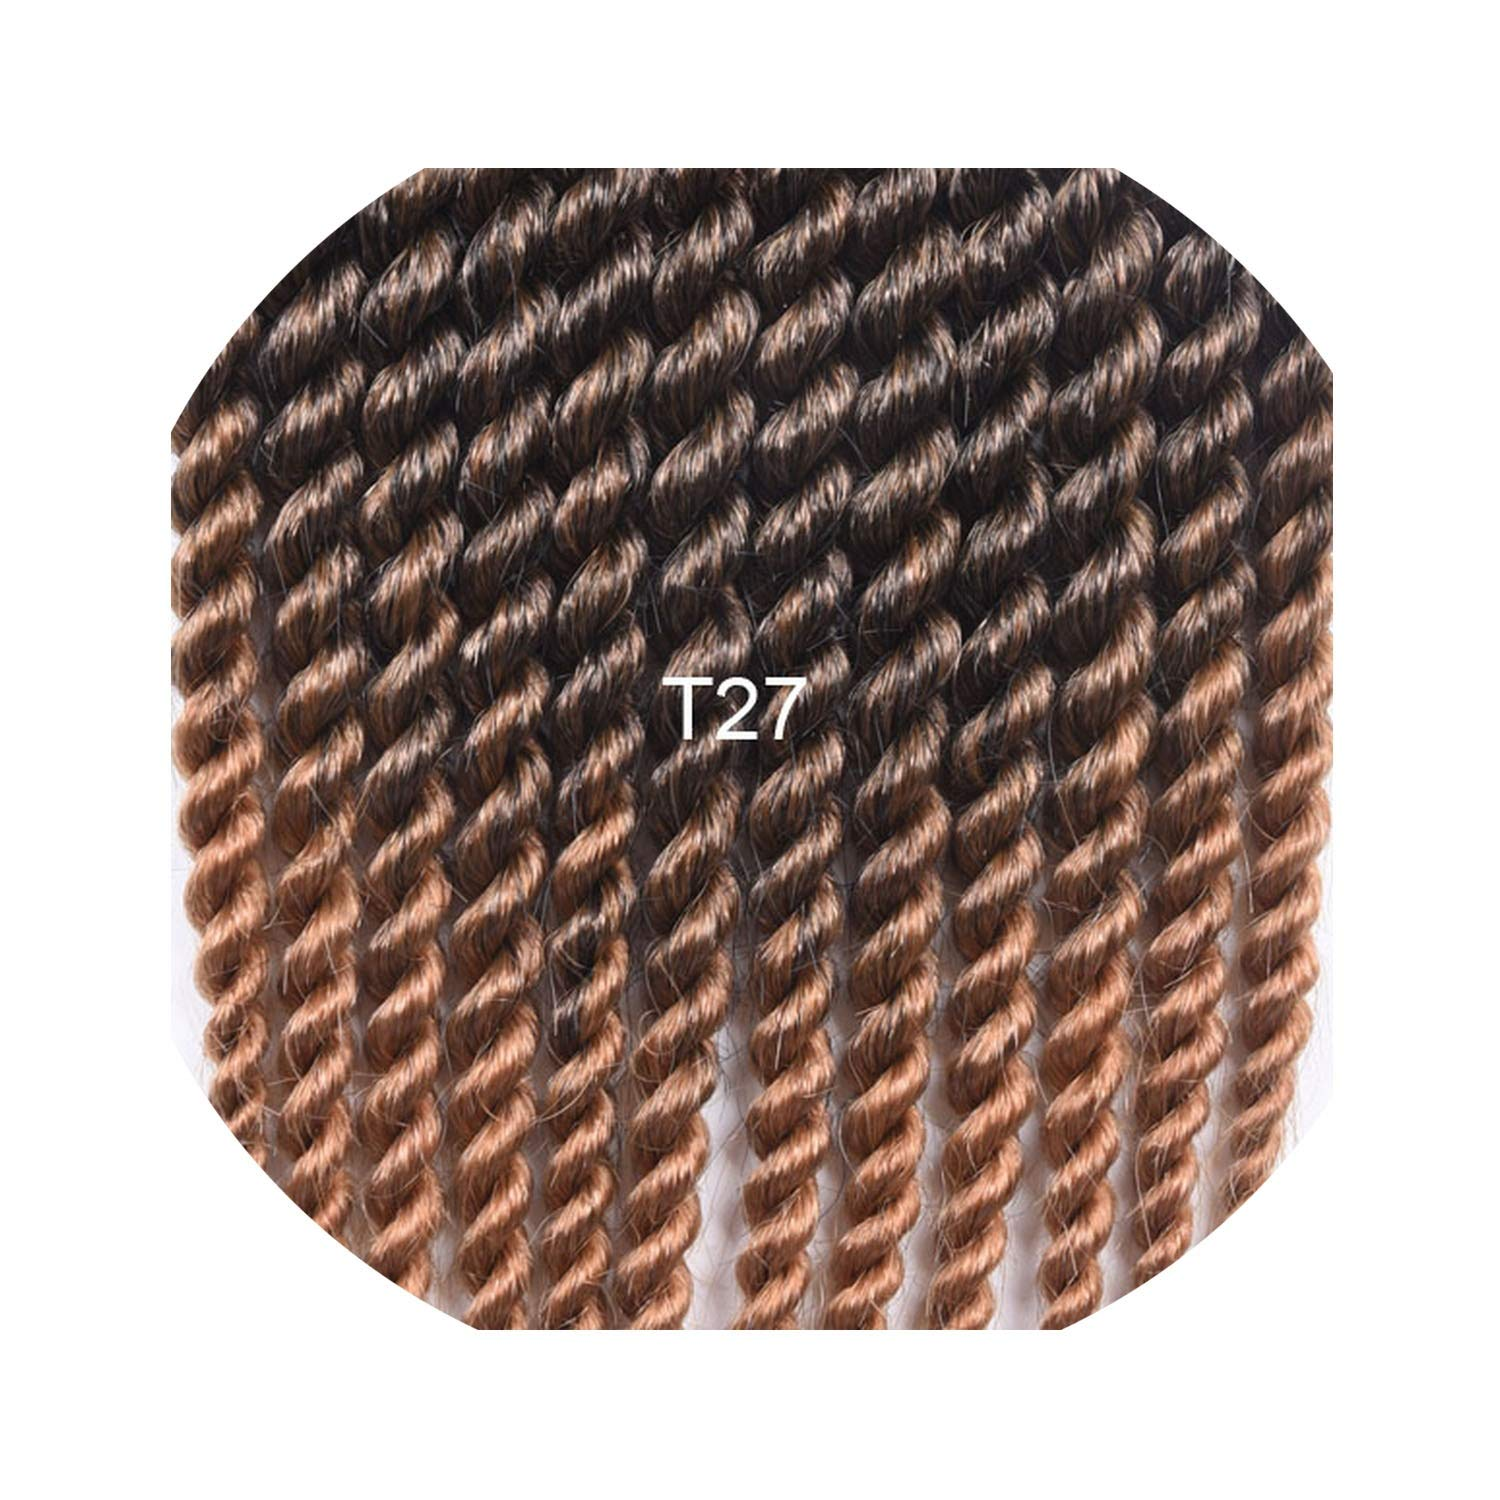 12'' 18''12 Roots/Pack Senegalese Twist Big Crochet Hair Extensions Synthetic Ombre Braiding Hair Crochet Braids 18 Colors,T1B/27,12inches,9Pcs/Lot by Beans and Balls